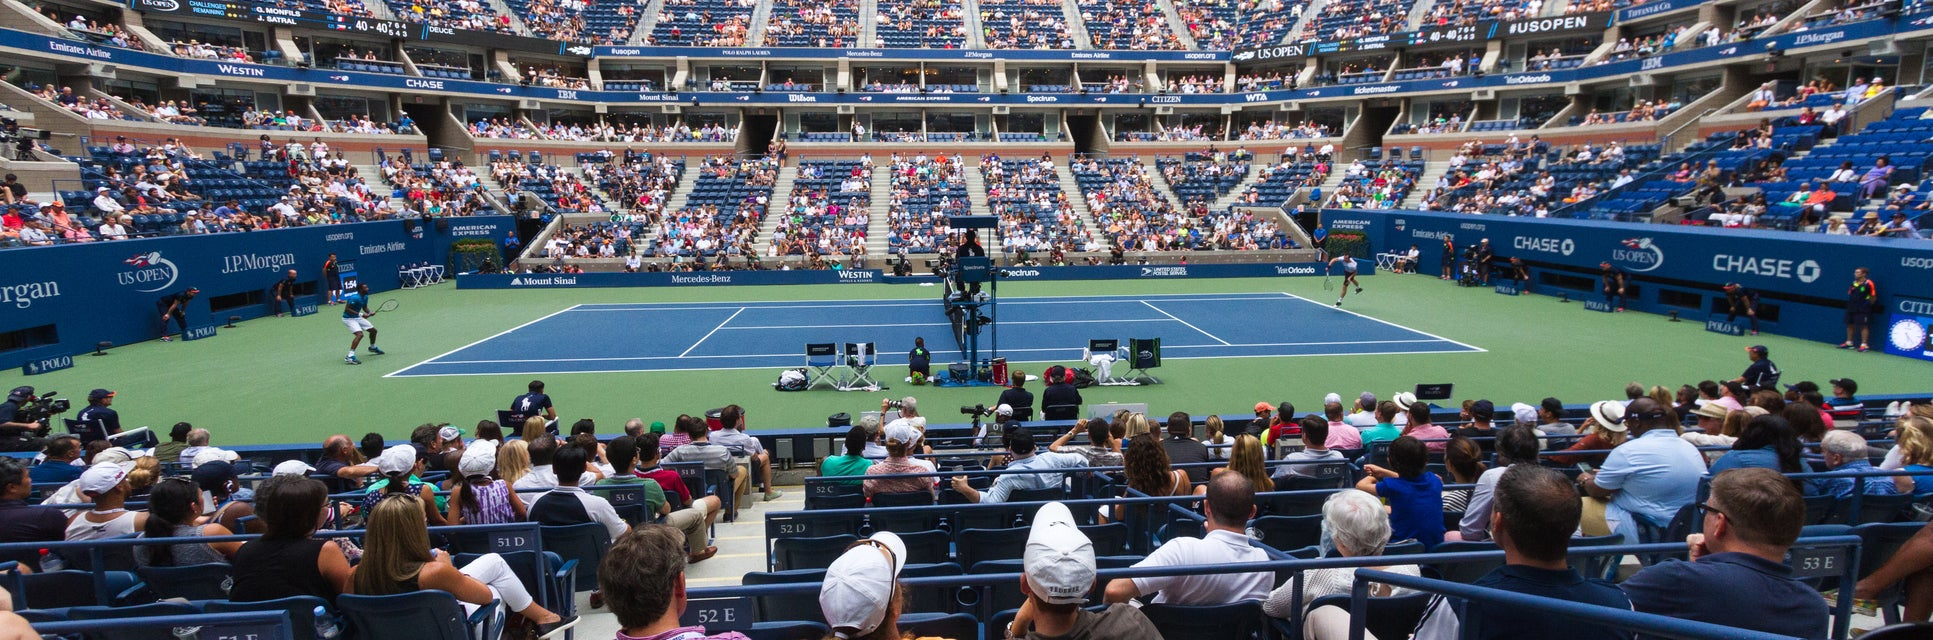 Seat view from Courtside Sideline